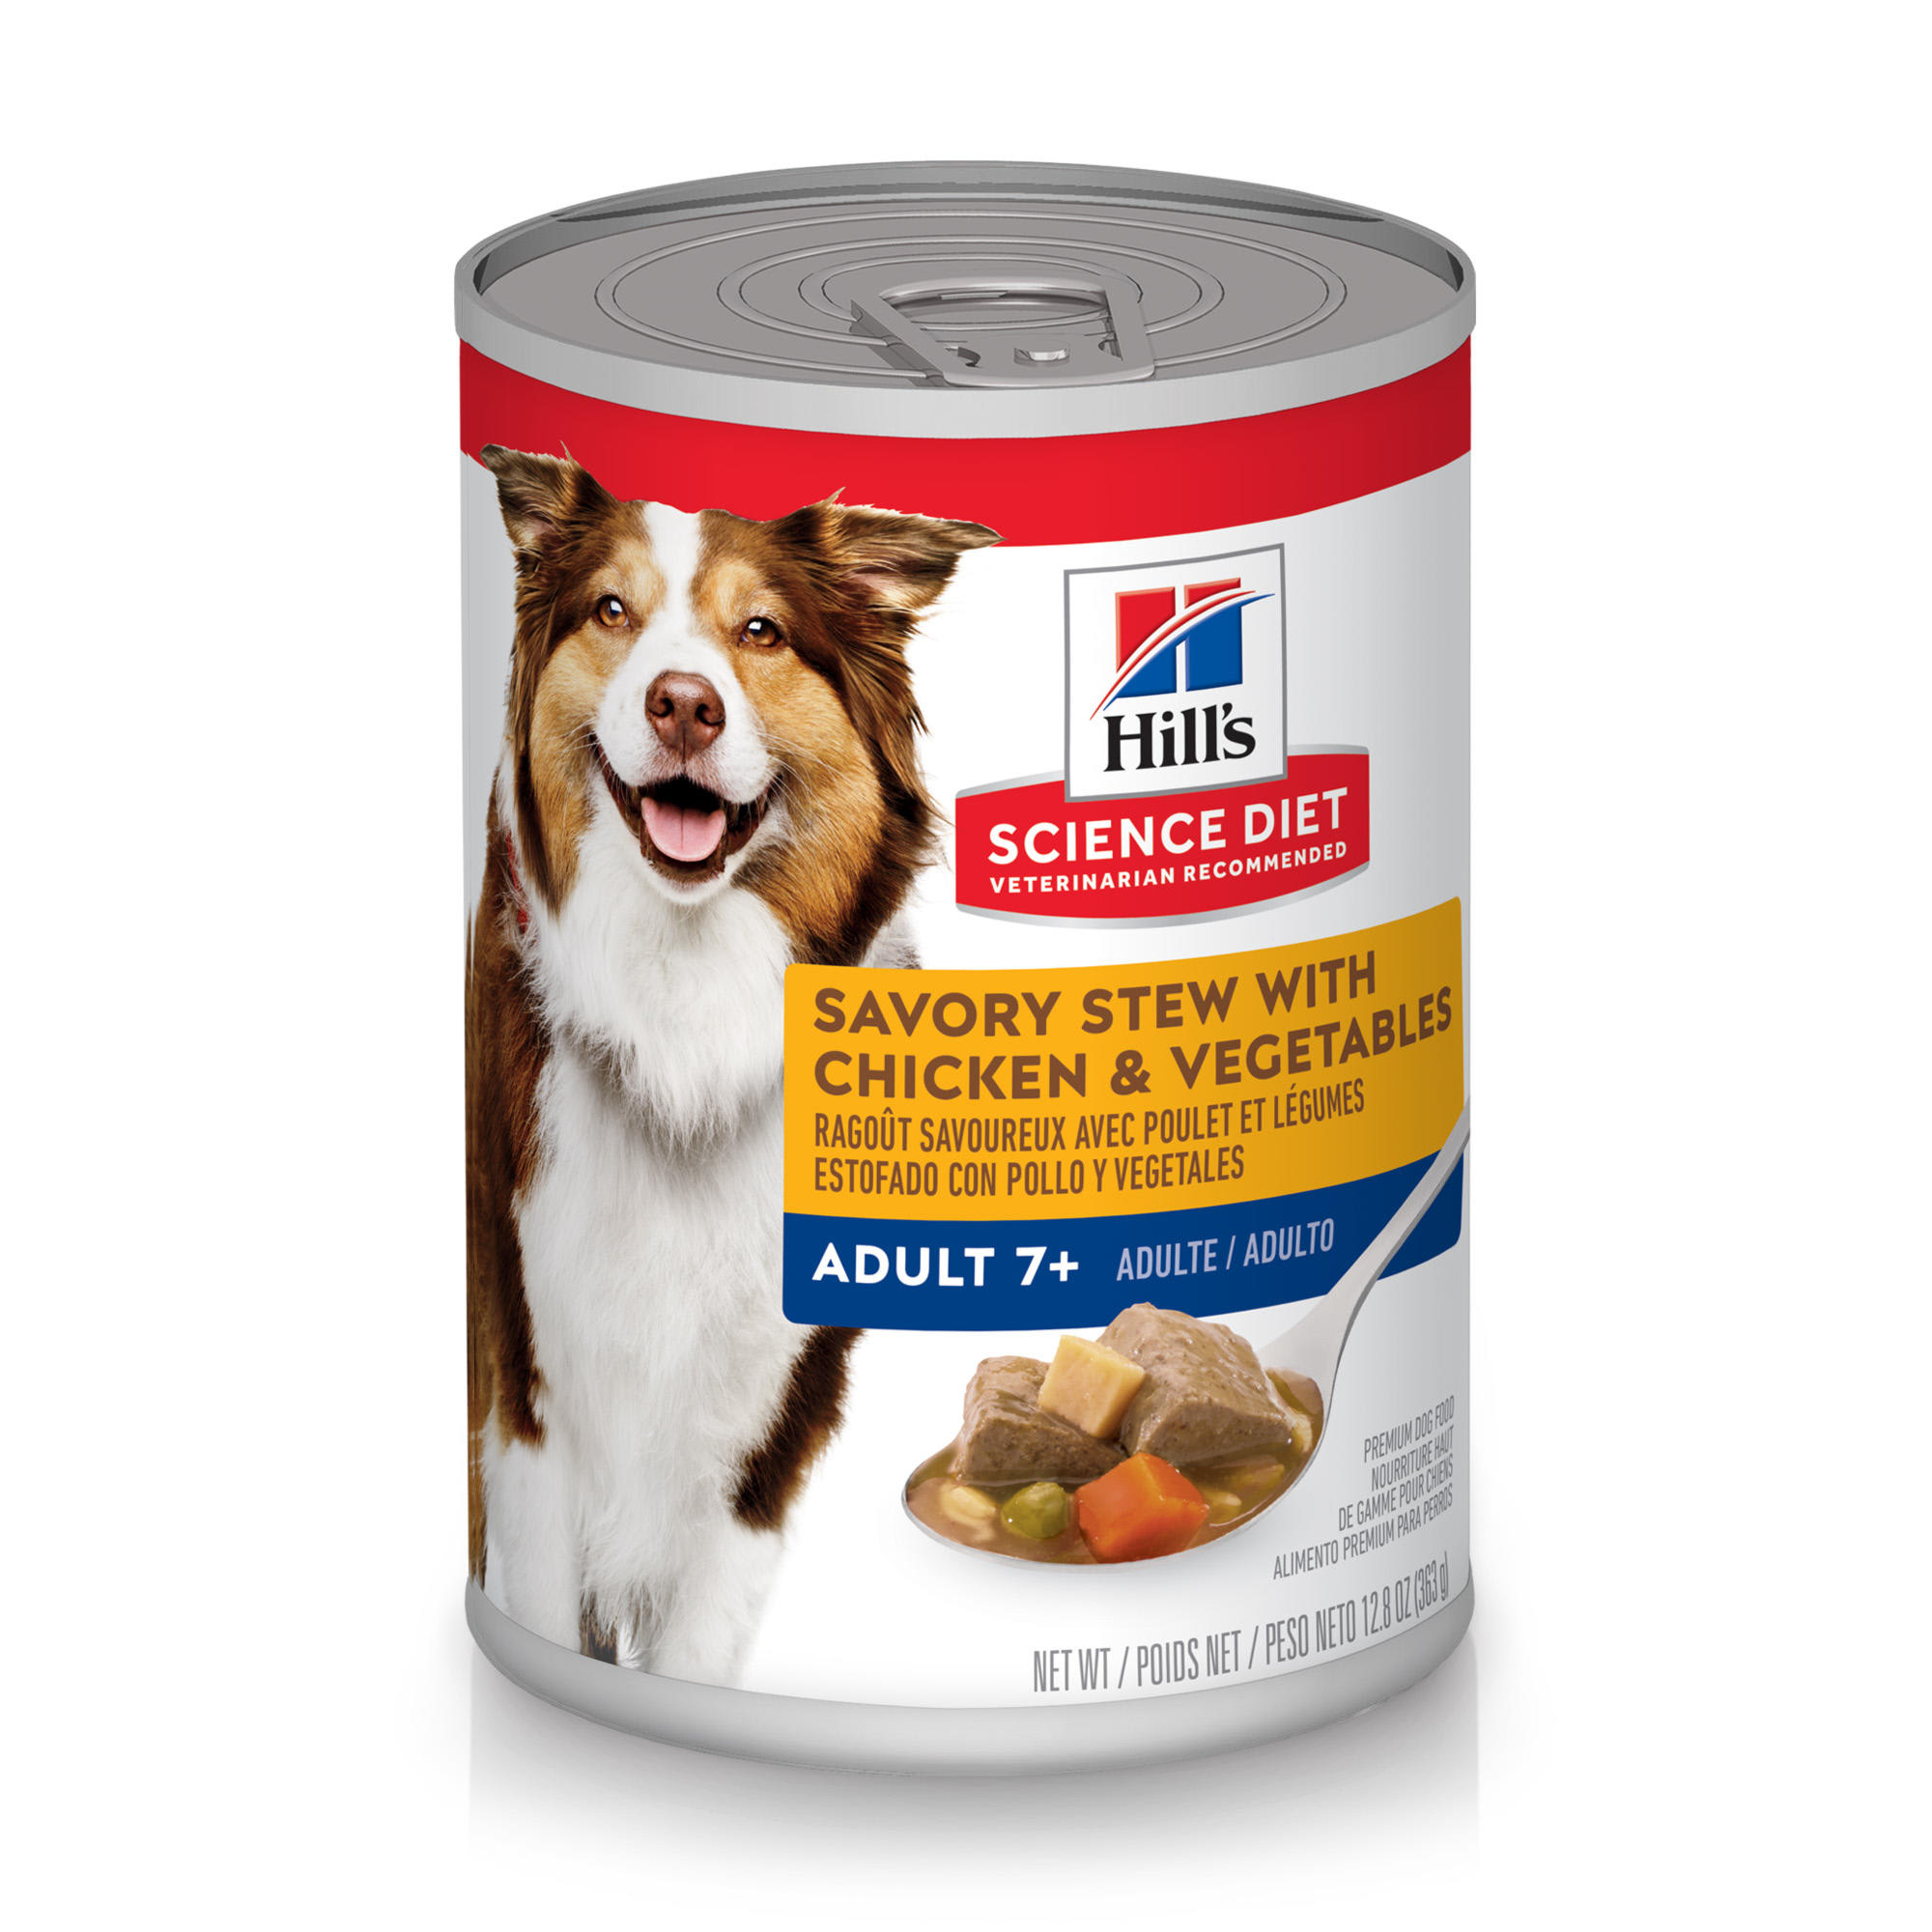 Hill's Science Diet Adult 7+ Savory Stew with Chicken & Vegetables Canned Dog Food, 12.8 oz., Case of 12